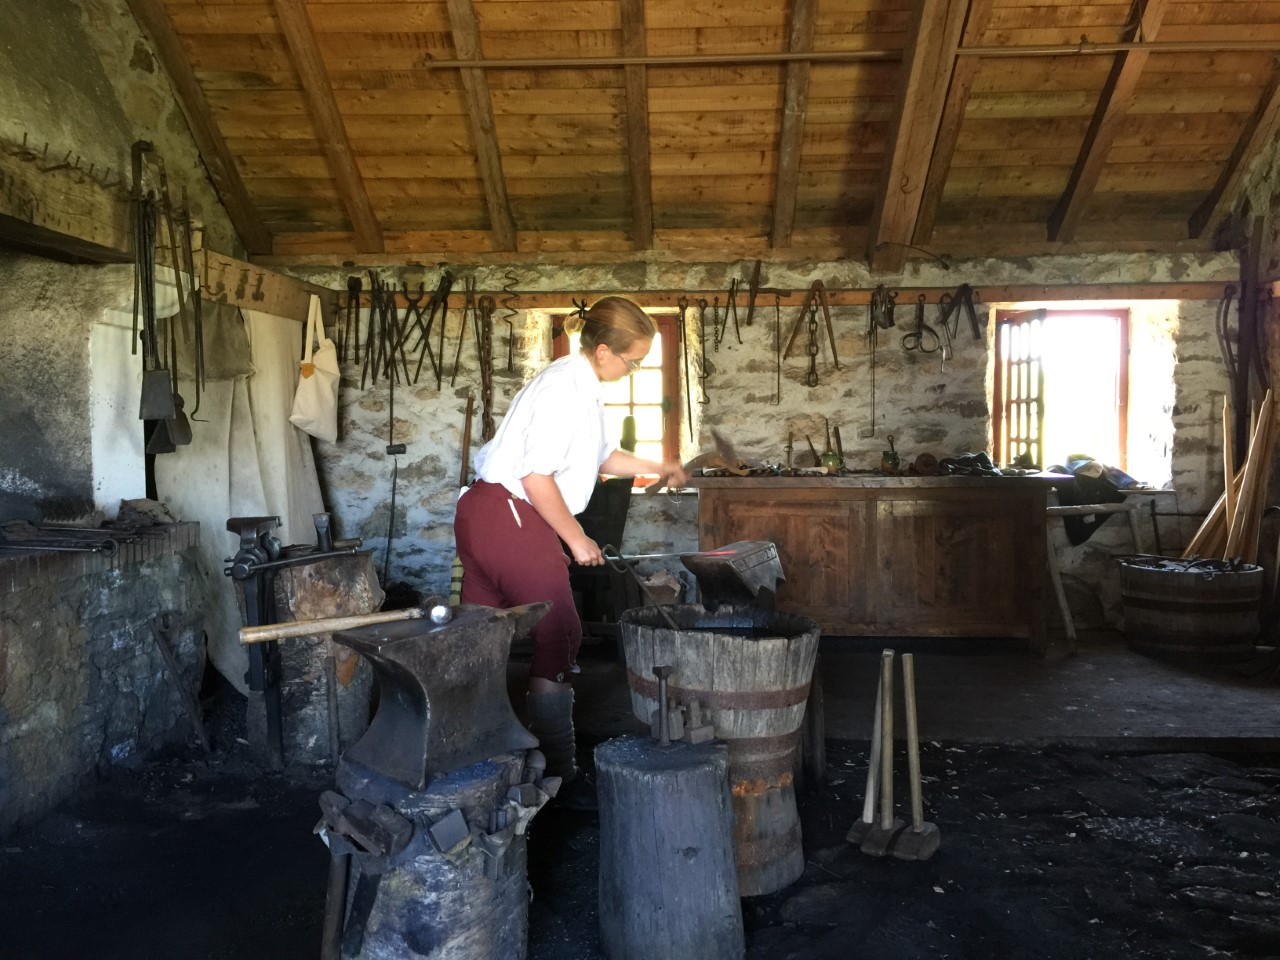 Natasha Juckes works at a forge at the Fortress of Louisbourg National Historic Site, which is a reconstruction of an 18th century town.